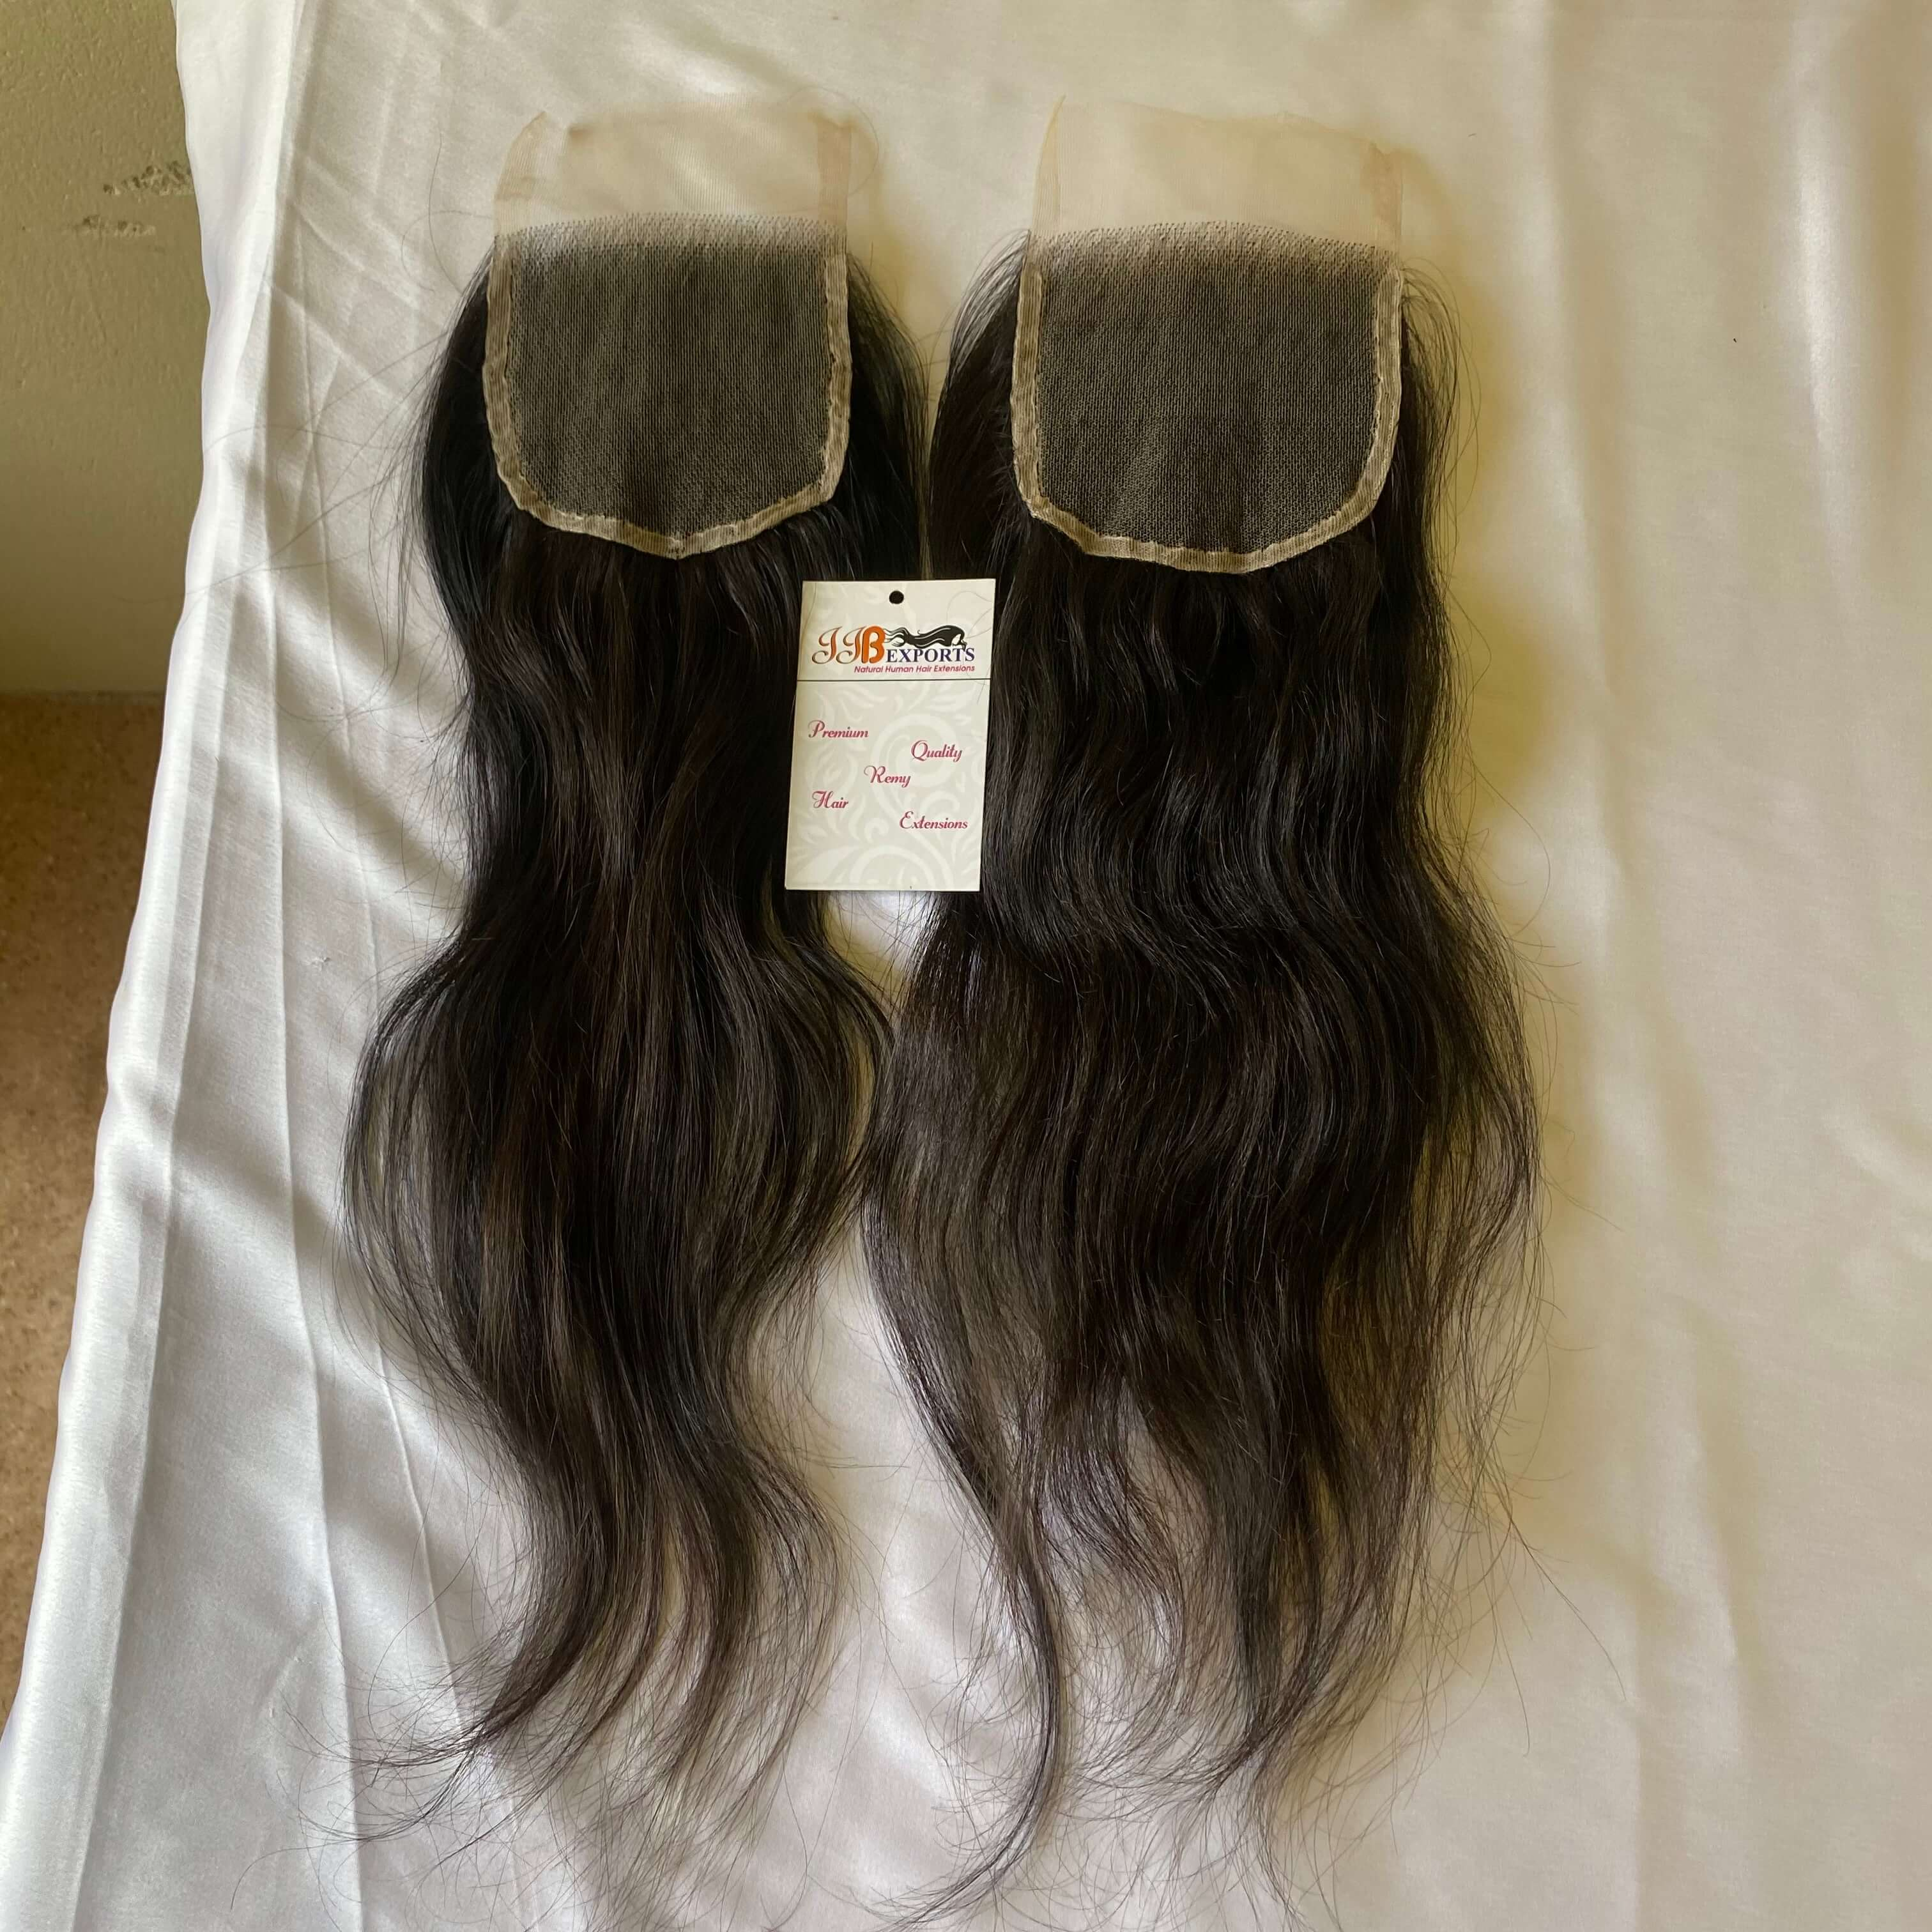 Brazilian Straight Wavy Curly Deep Wave 4x4 hd lace closure Hair Extensions